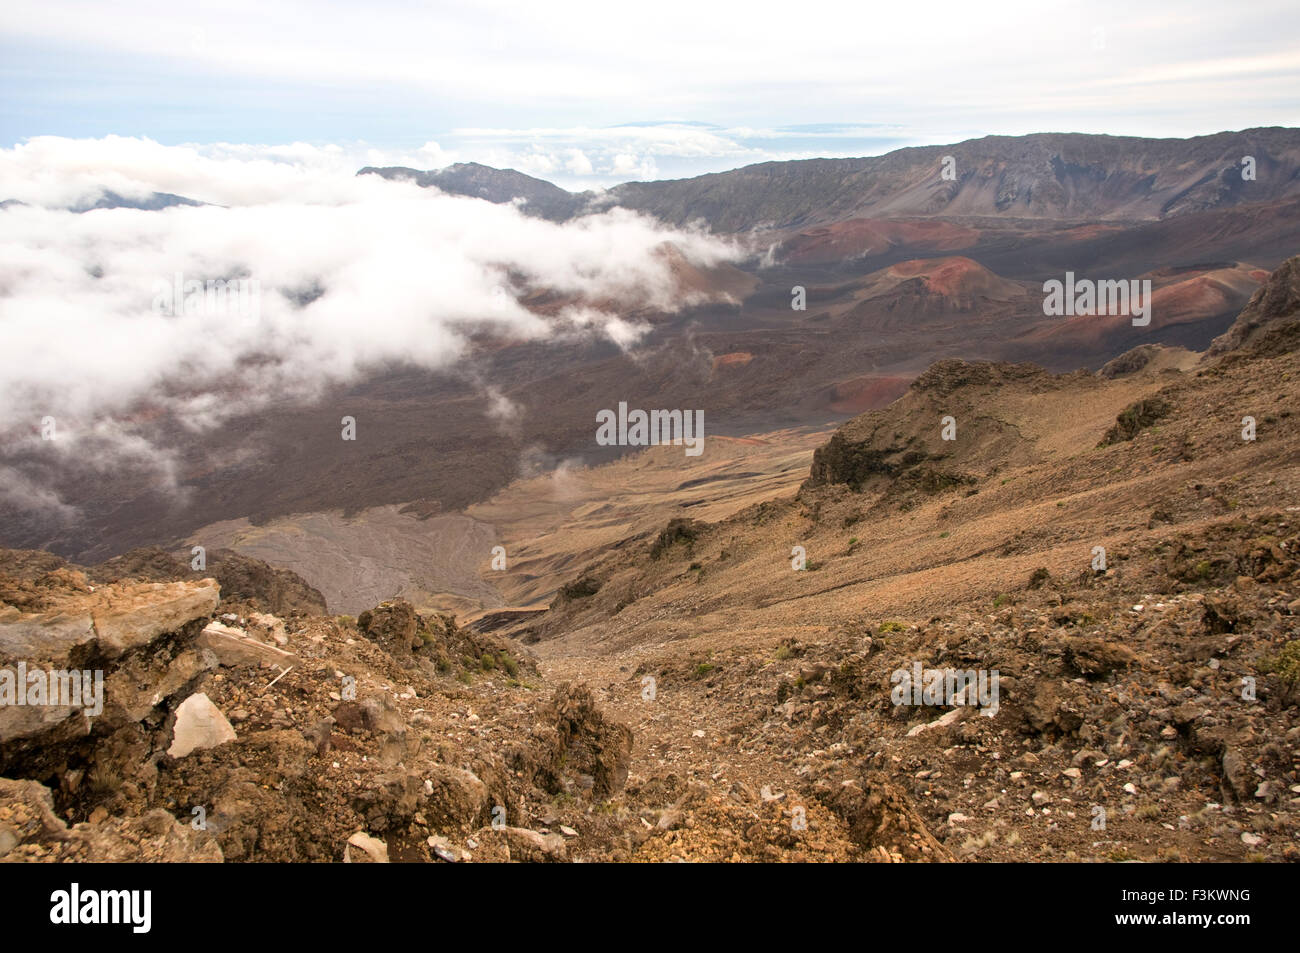 Cinder cones in the Haleakala National Park. Views from the viewpoint of Leleiwi. Maui. Hawaii. The Haleakala National - Stock Image